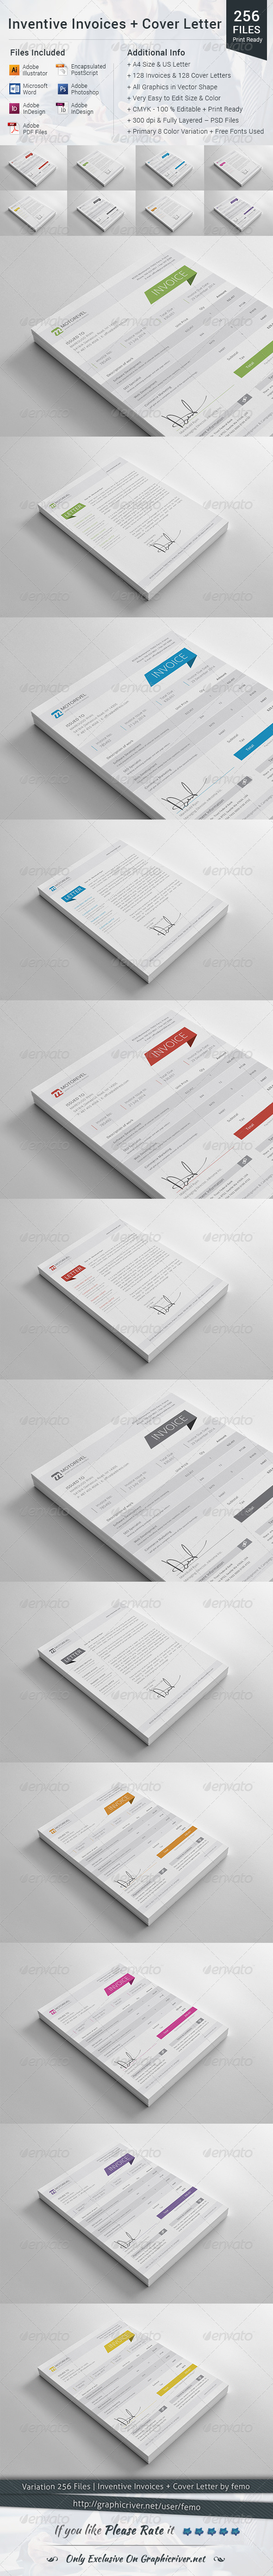 Inventive Invoices + Cover Letter - Proposals & Invoices Stationery